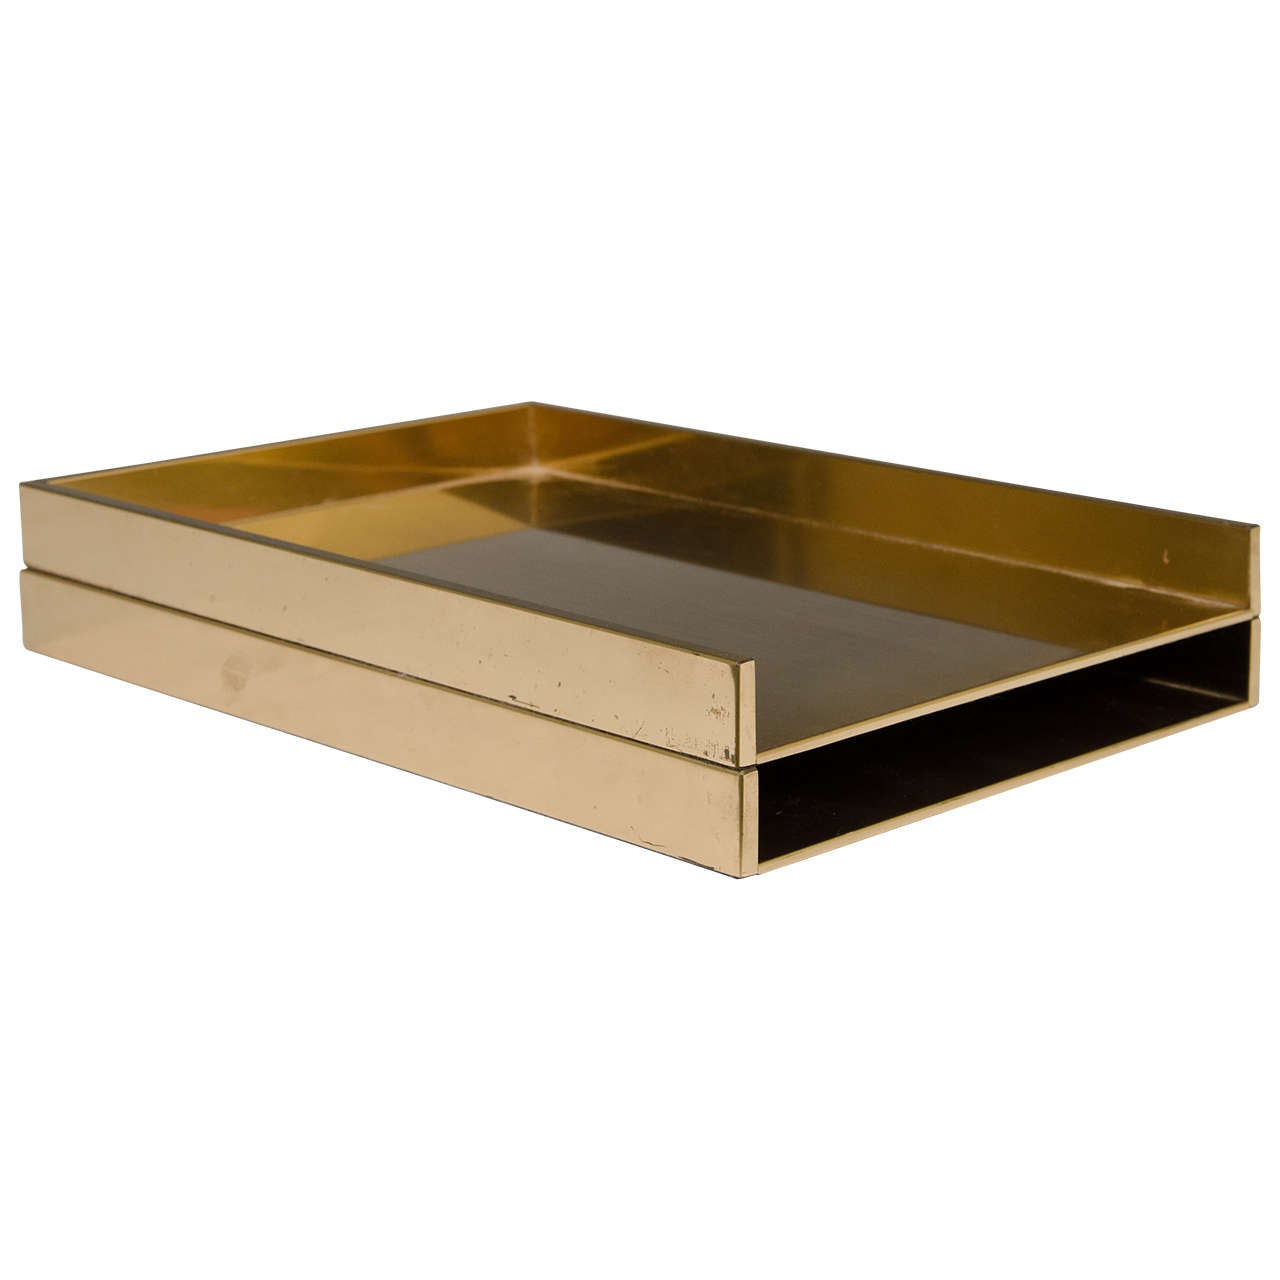 Best Vintage Pair Of Sleek Brass Stackable Paper Trays Or Desk This Month